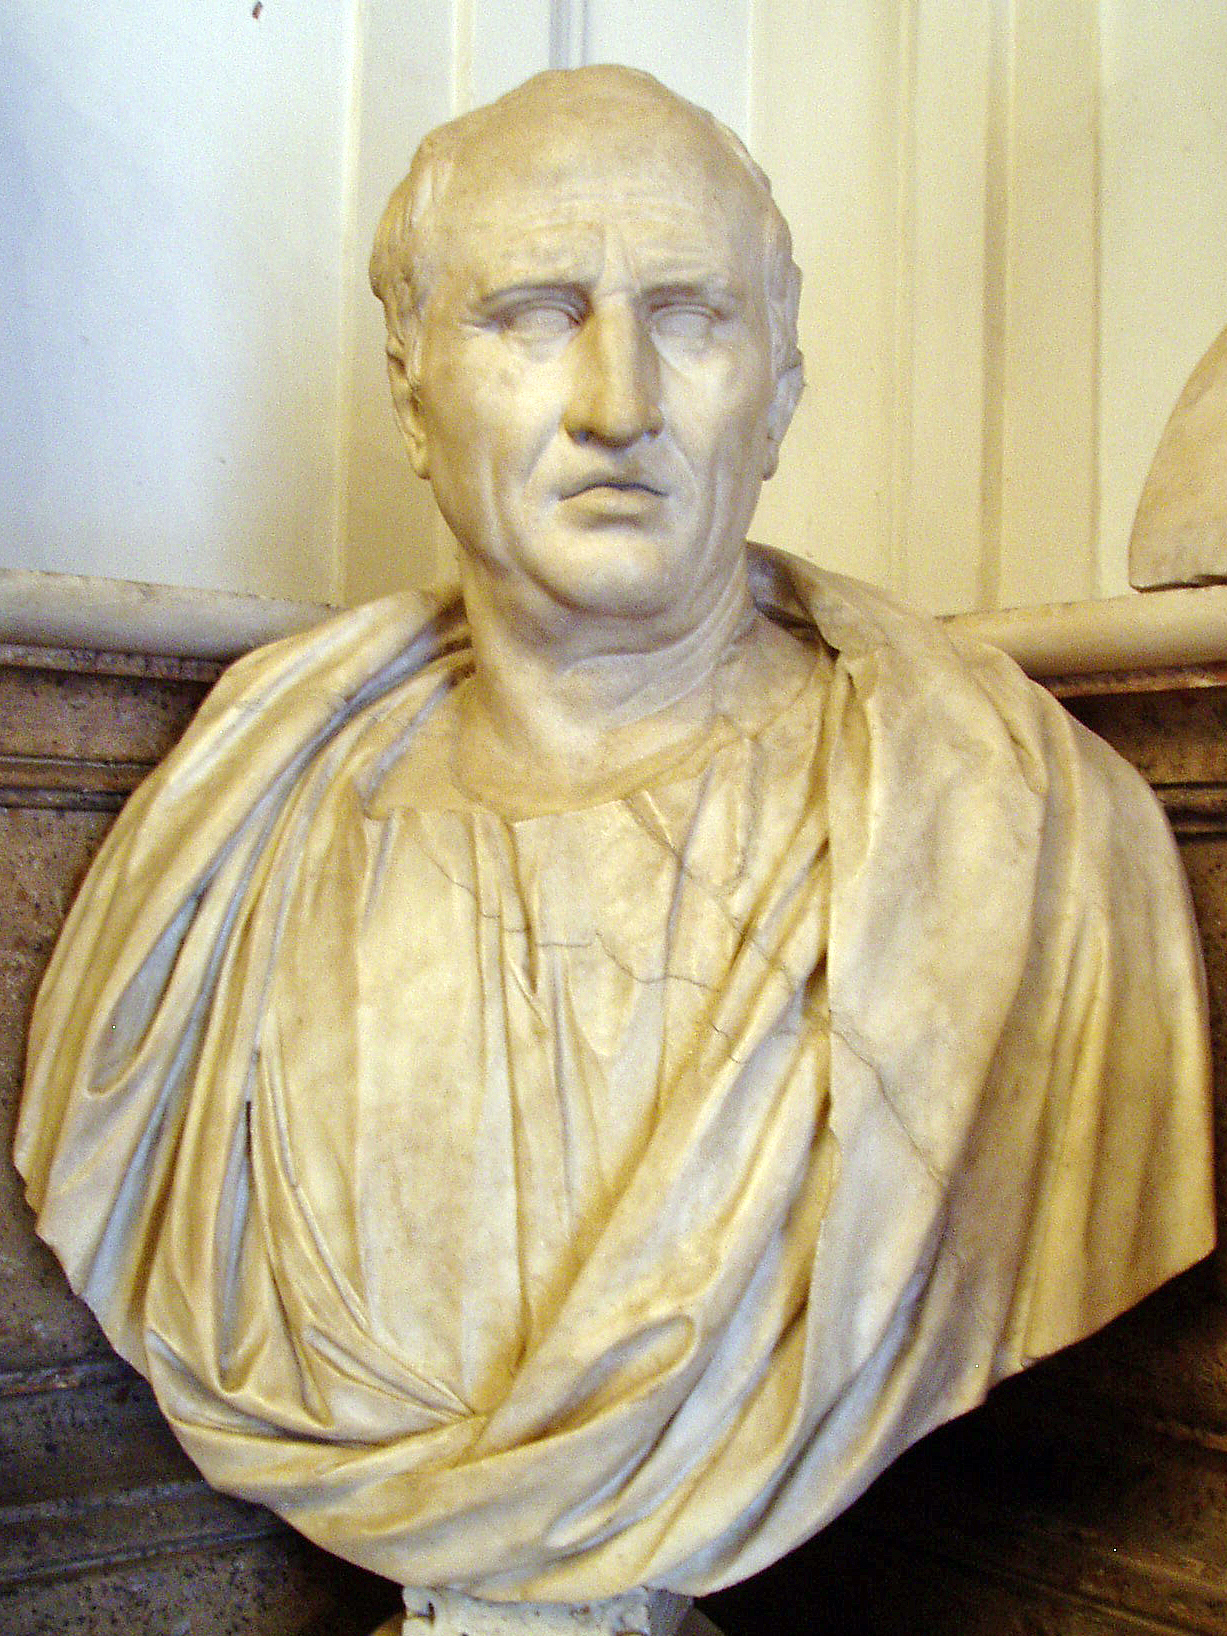 https://i1.wp.com/upload.wikimedia.org/wikipedia/commons/4/40/Cicero_-_Musei_Capitolini.JPG